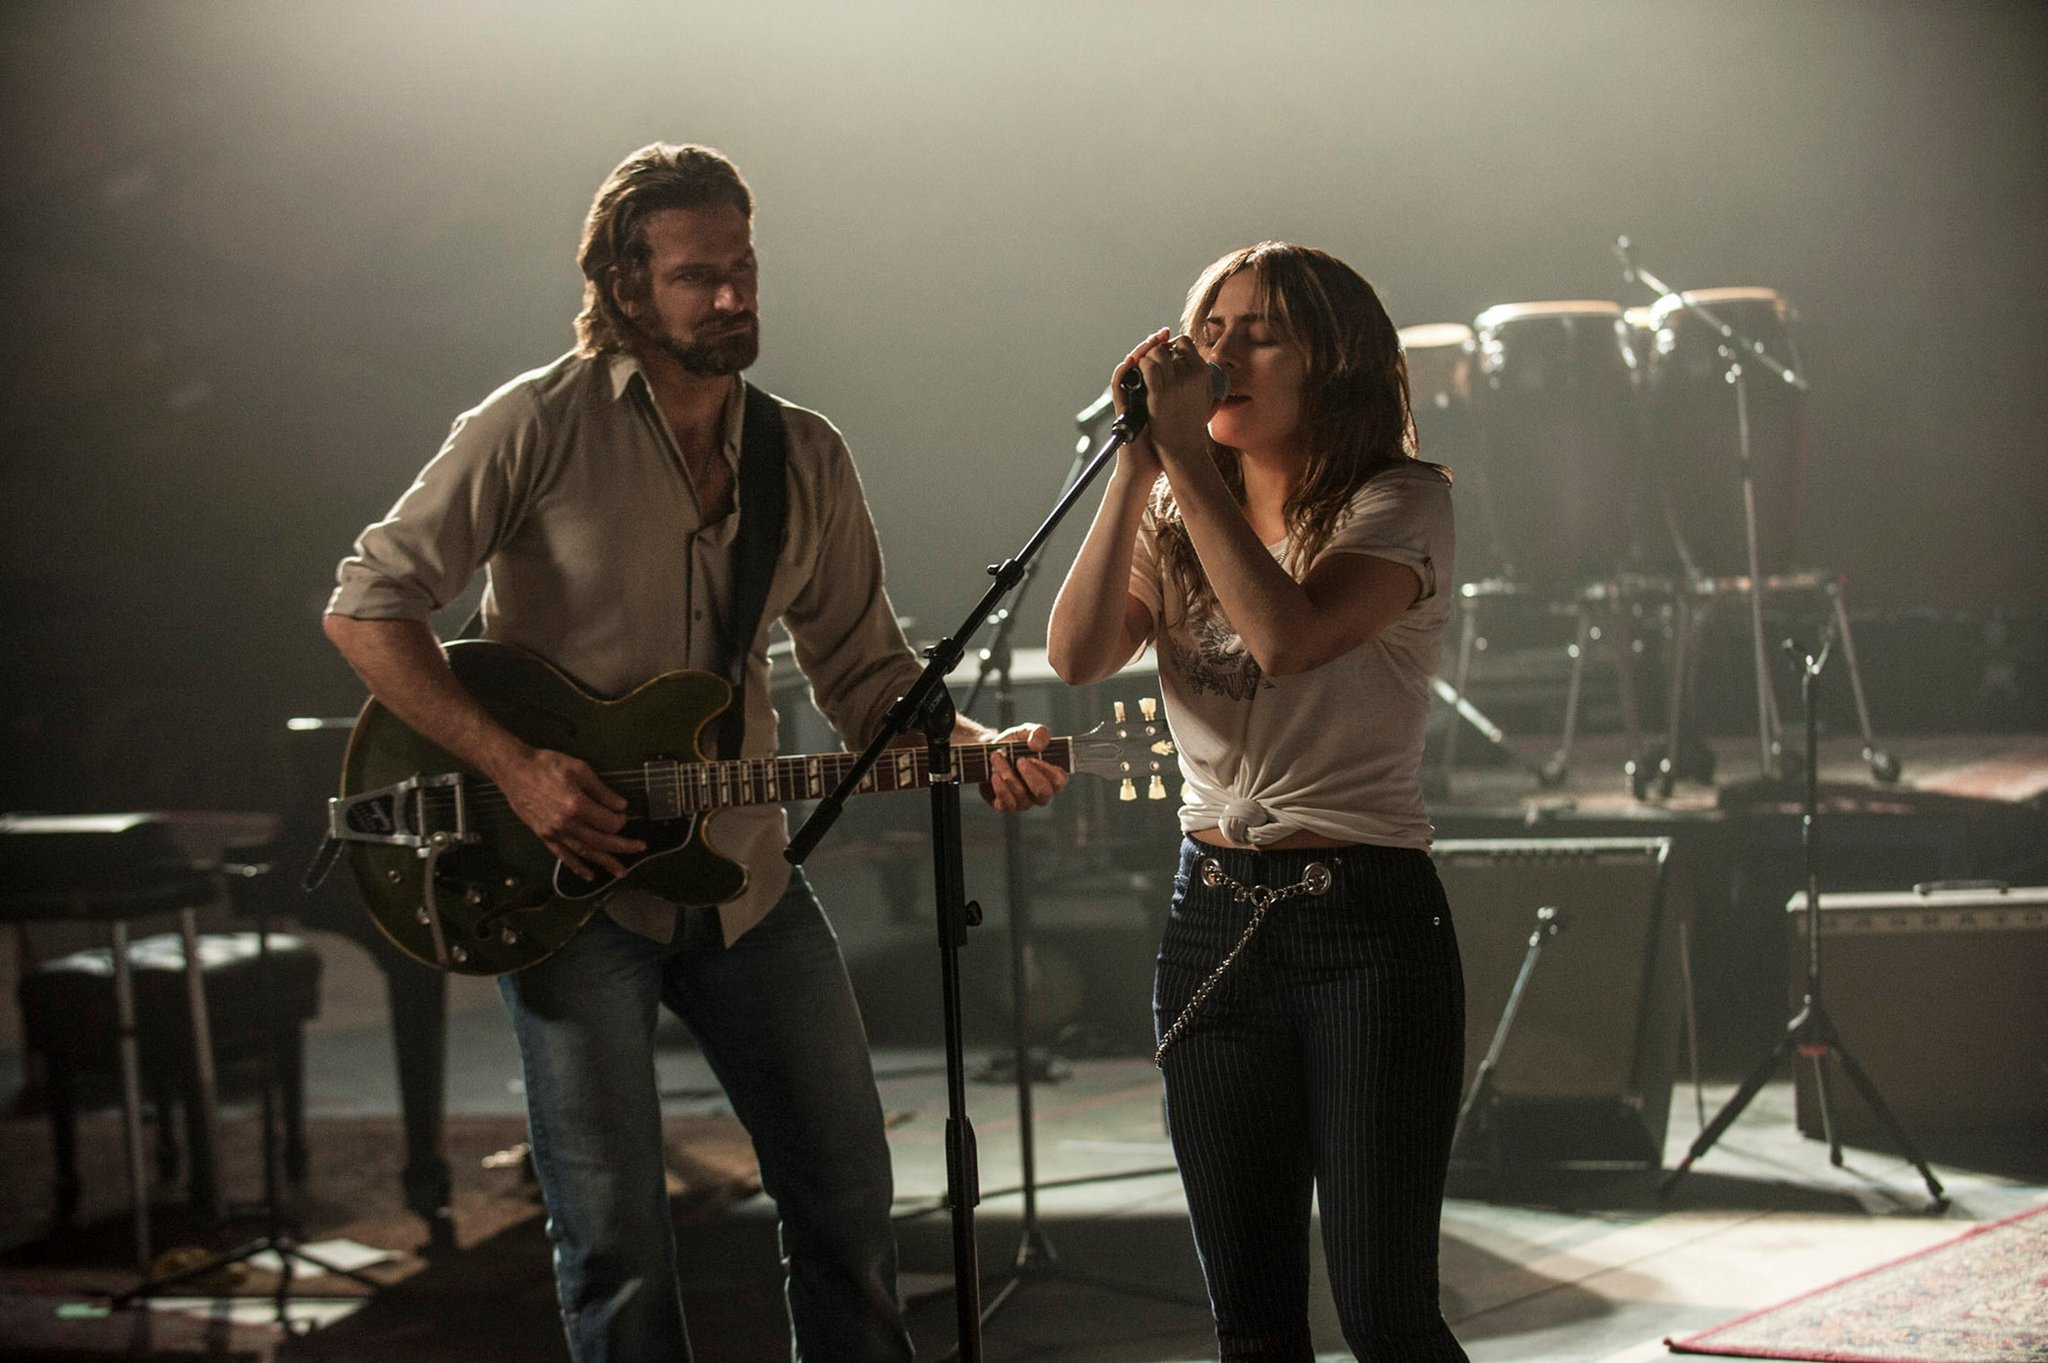 'A Star is Born': Performances, music keep it afloat (IANS Review, Rating: ***)